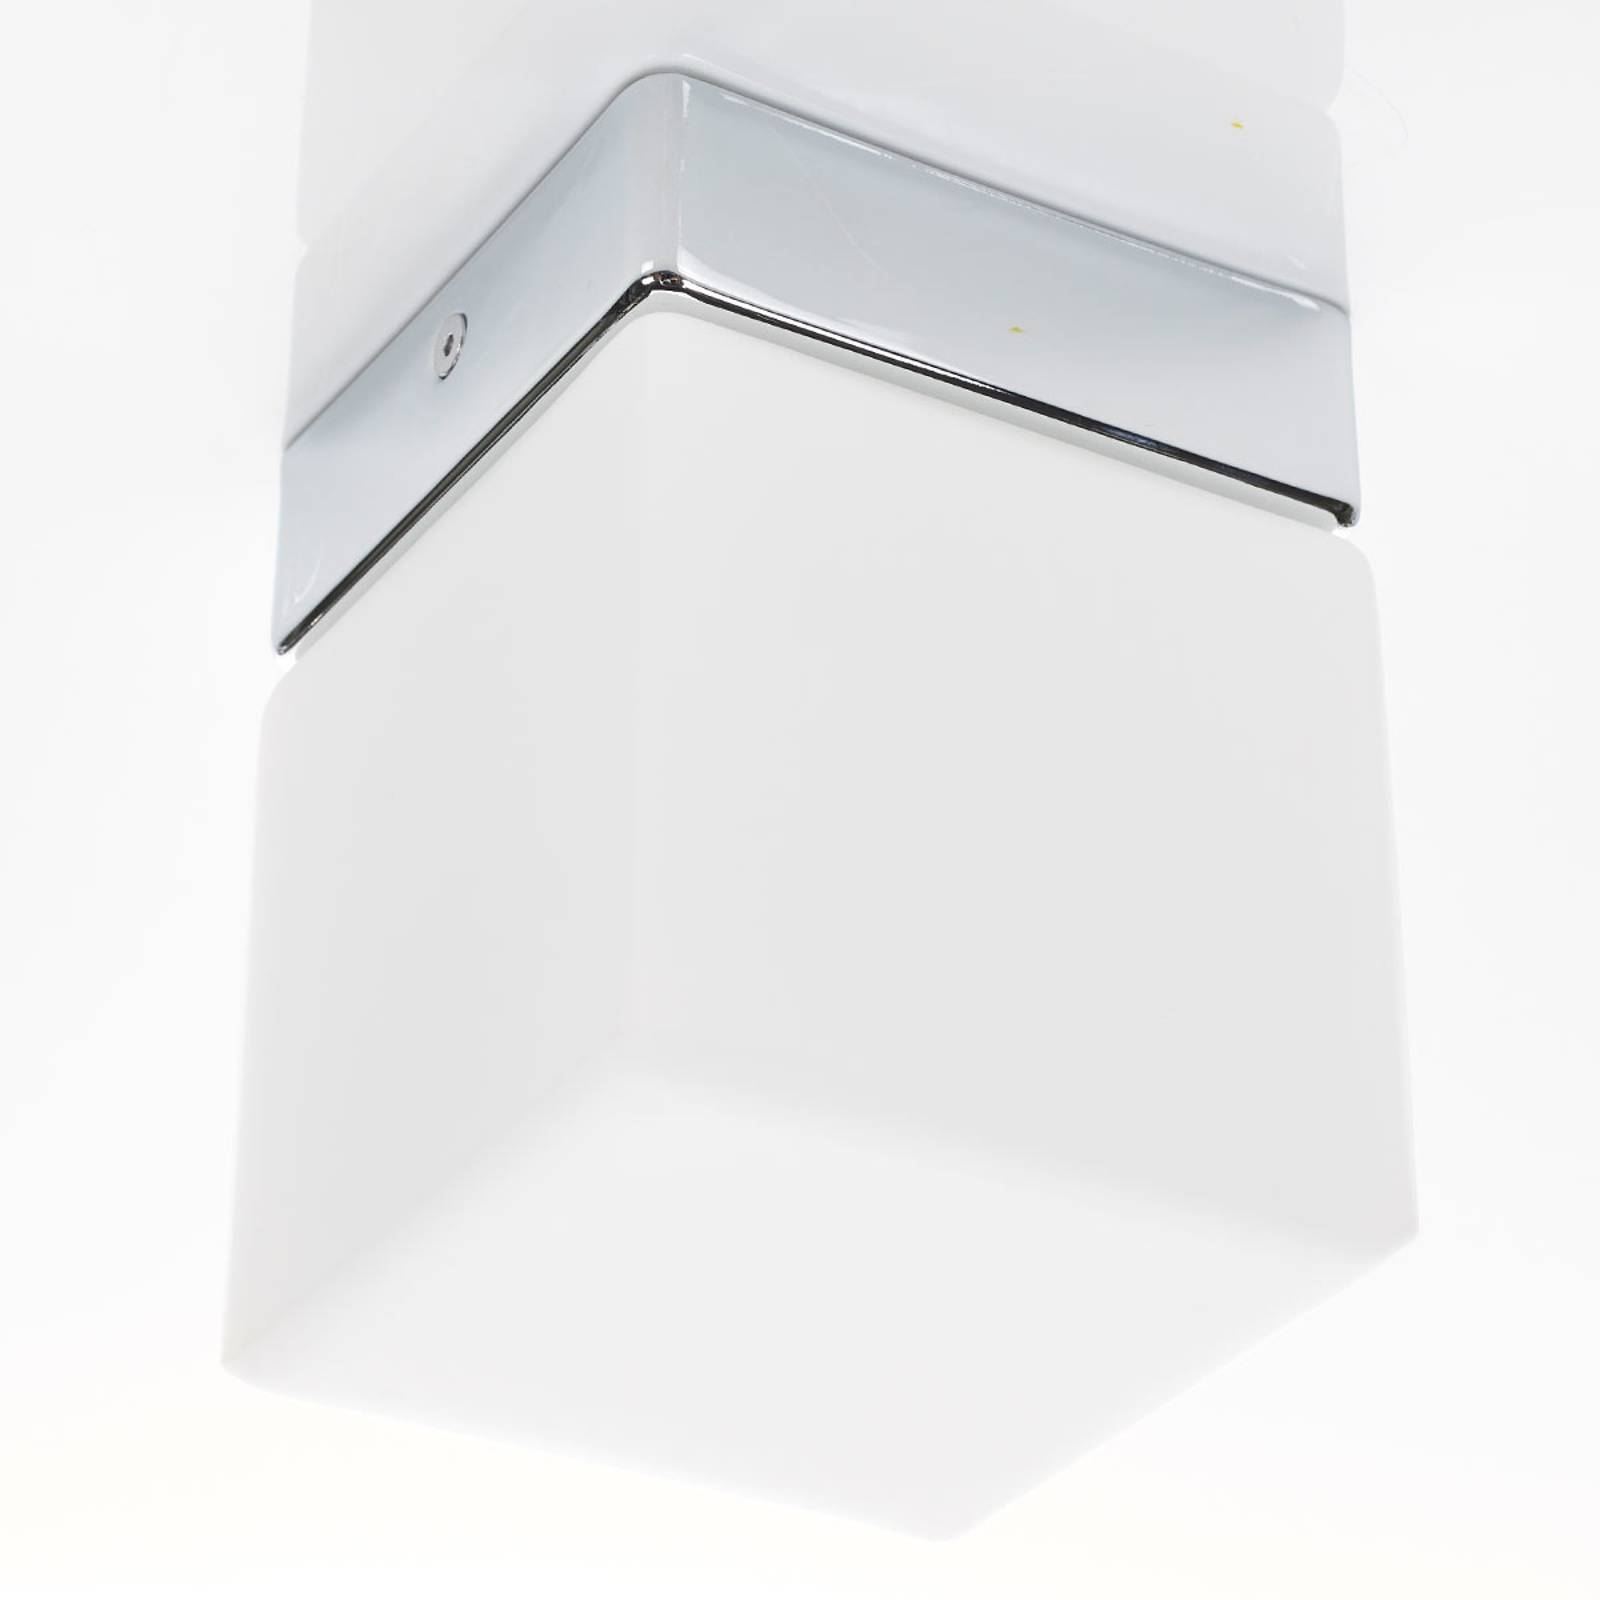 Cube-shaped LED bathroom ceiling light Keto from Helestra